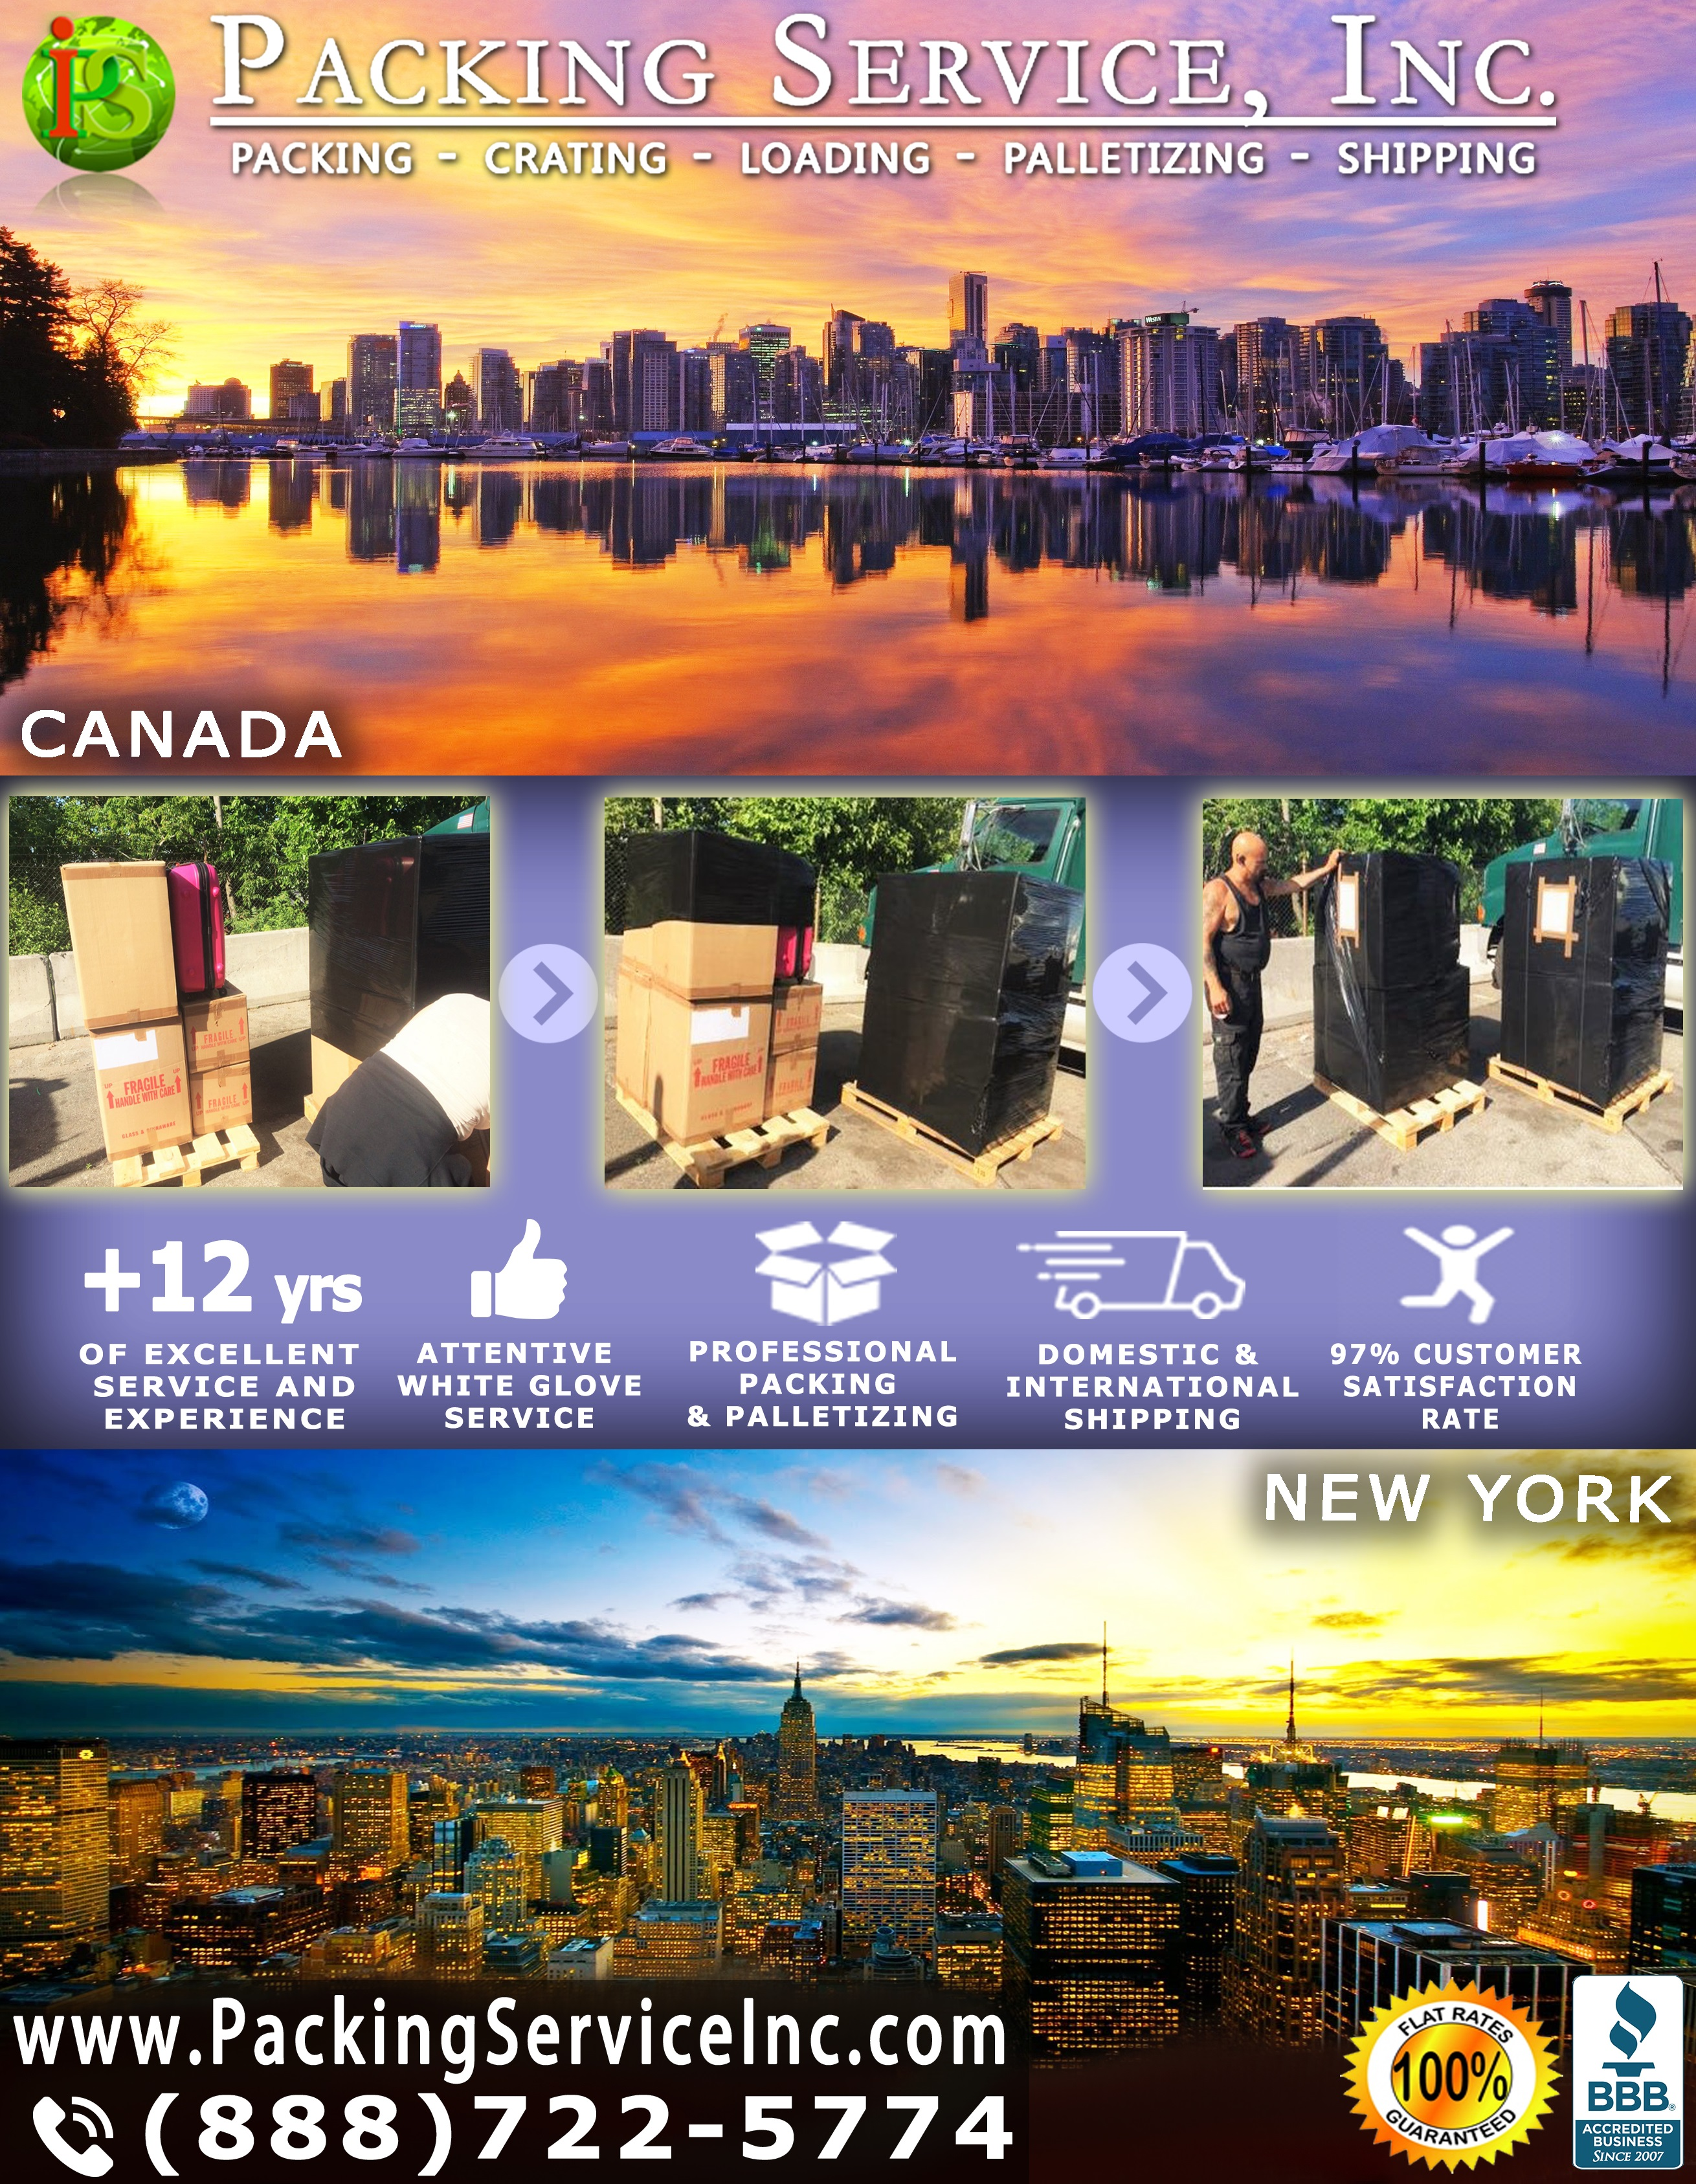 packing-boxes-palletizing-and-shipping-from-new-york-to-canada-with-packing-service-inc-586